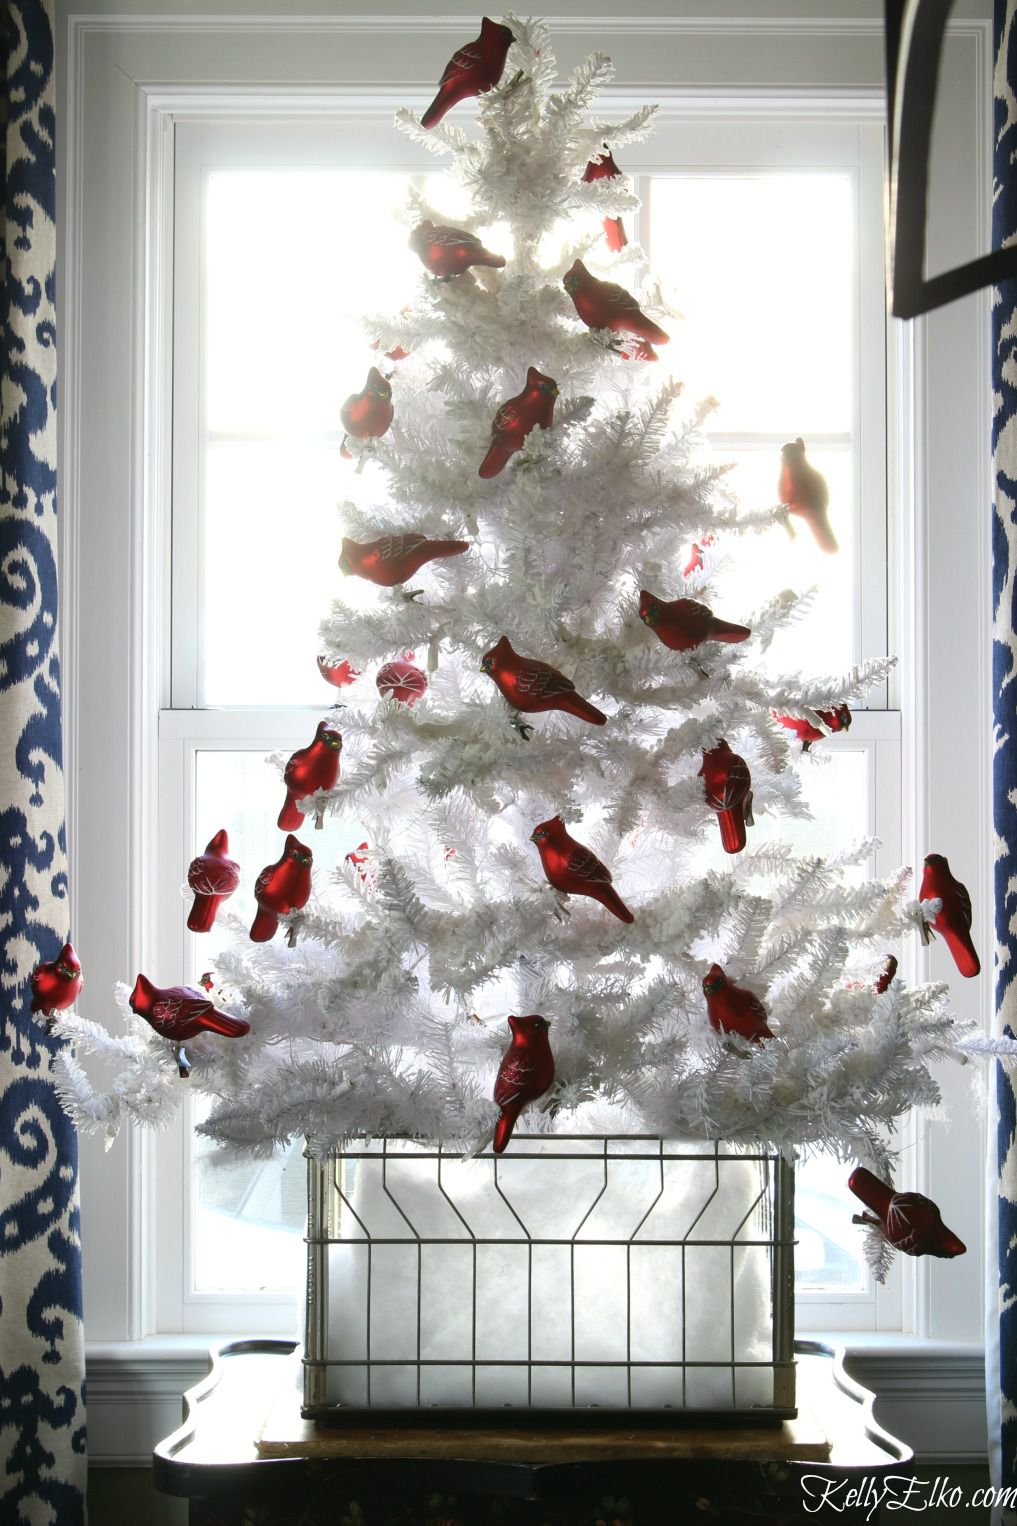 flocked white christmas tree red cardinals e fbd jpg 1017x1526 flocked christmas tree decorating ideas plaid - Flocked Christmas Tree Decorating Ideas